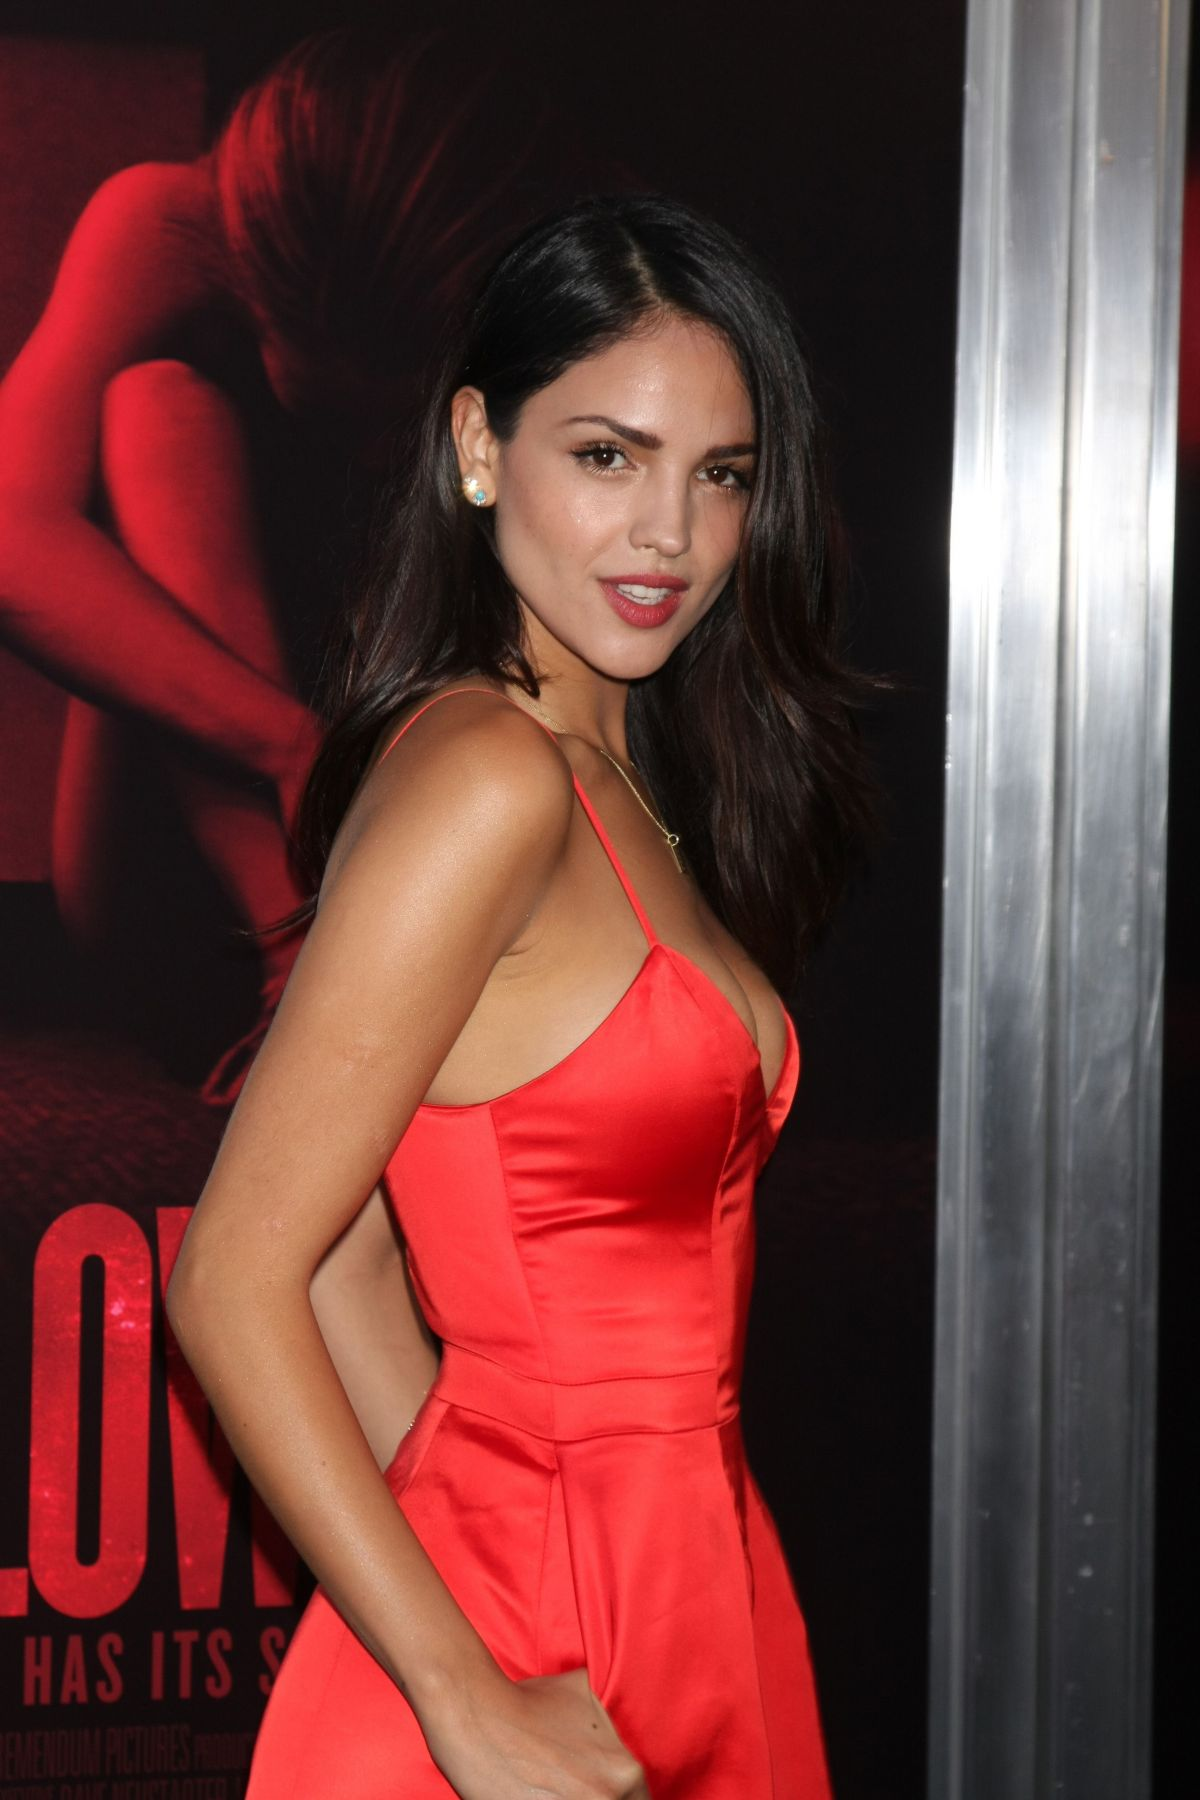 Celebrity photo gallery hollywood photos for sale